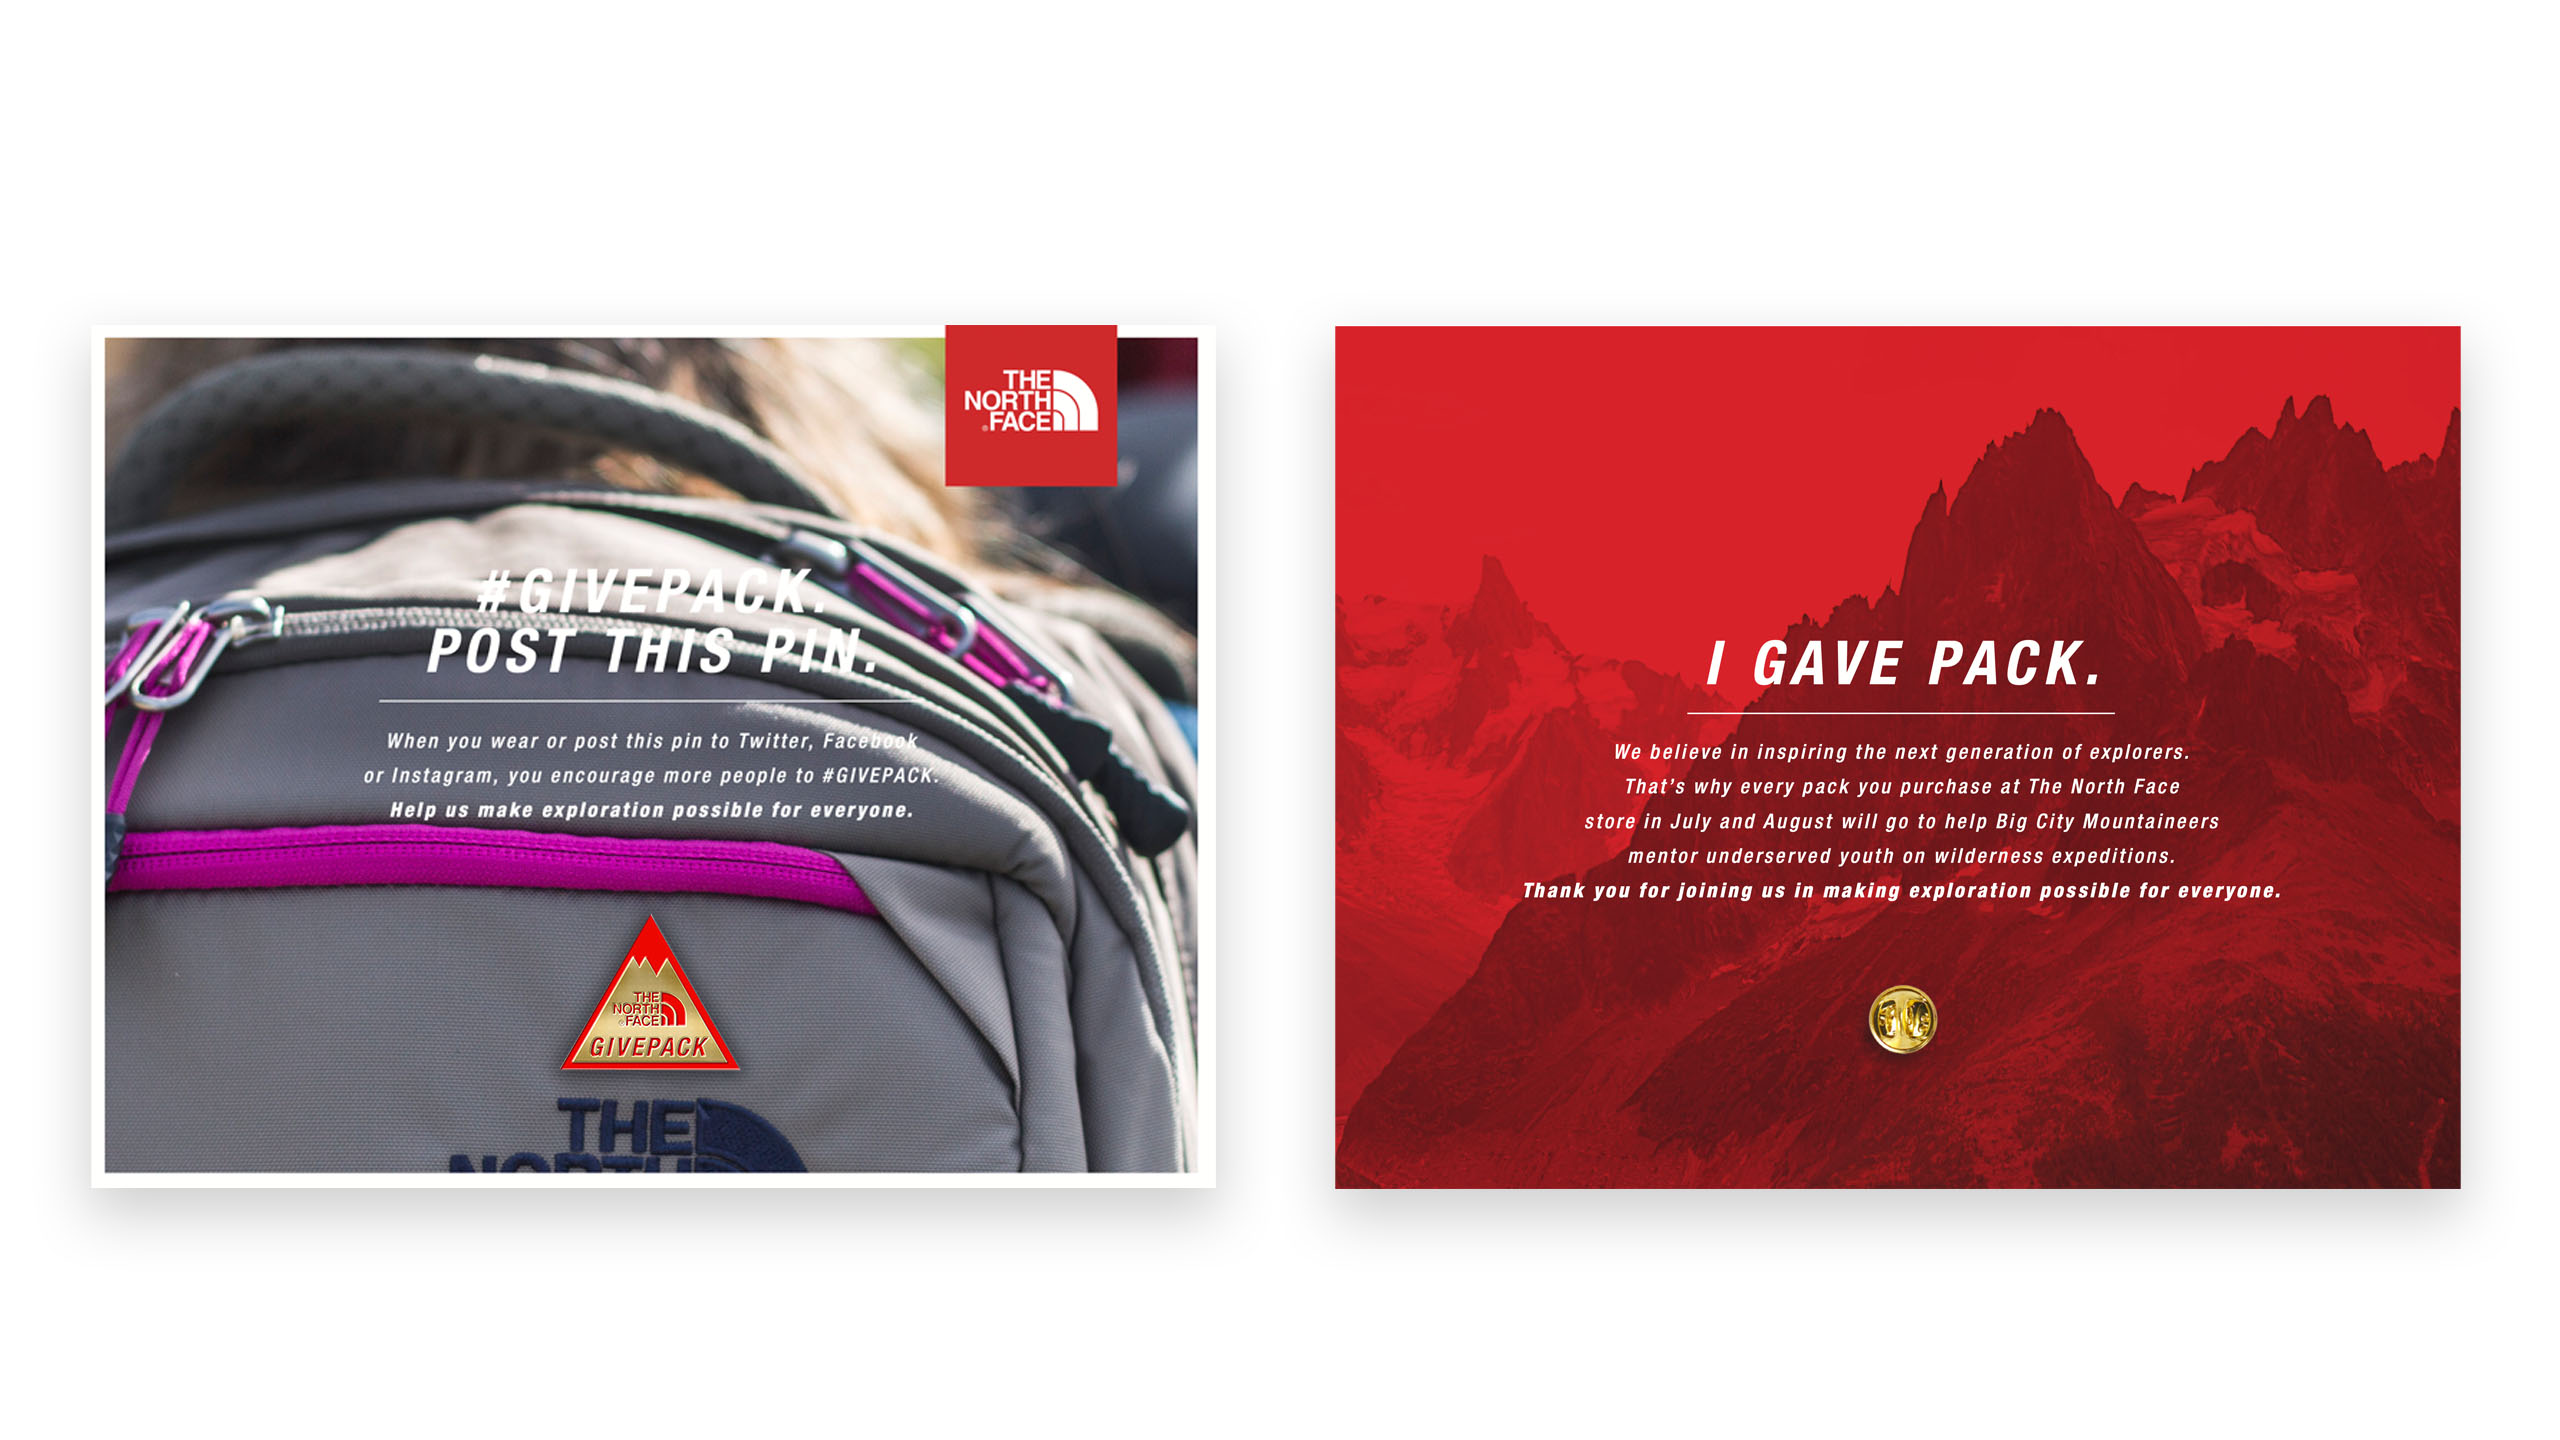 The North Face: Givepack